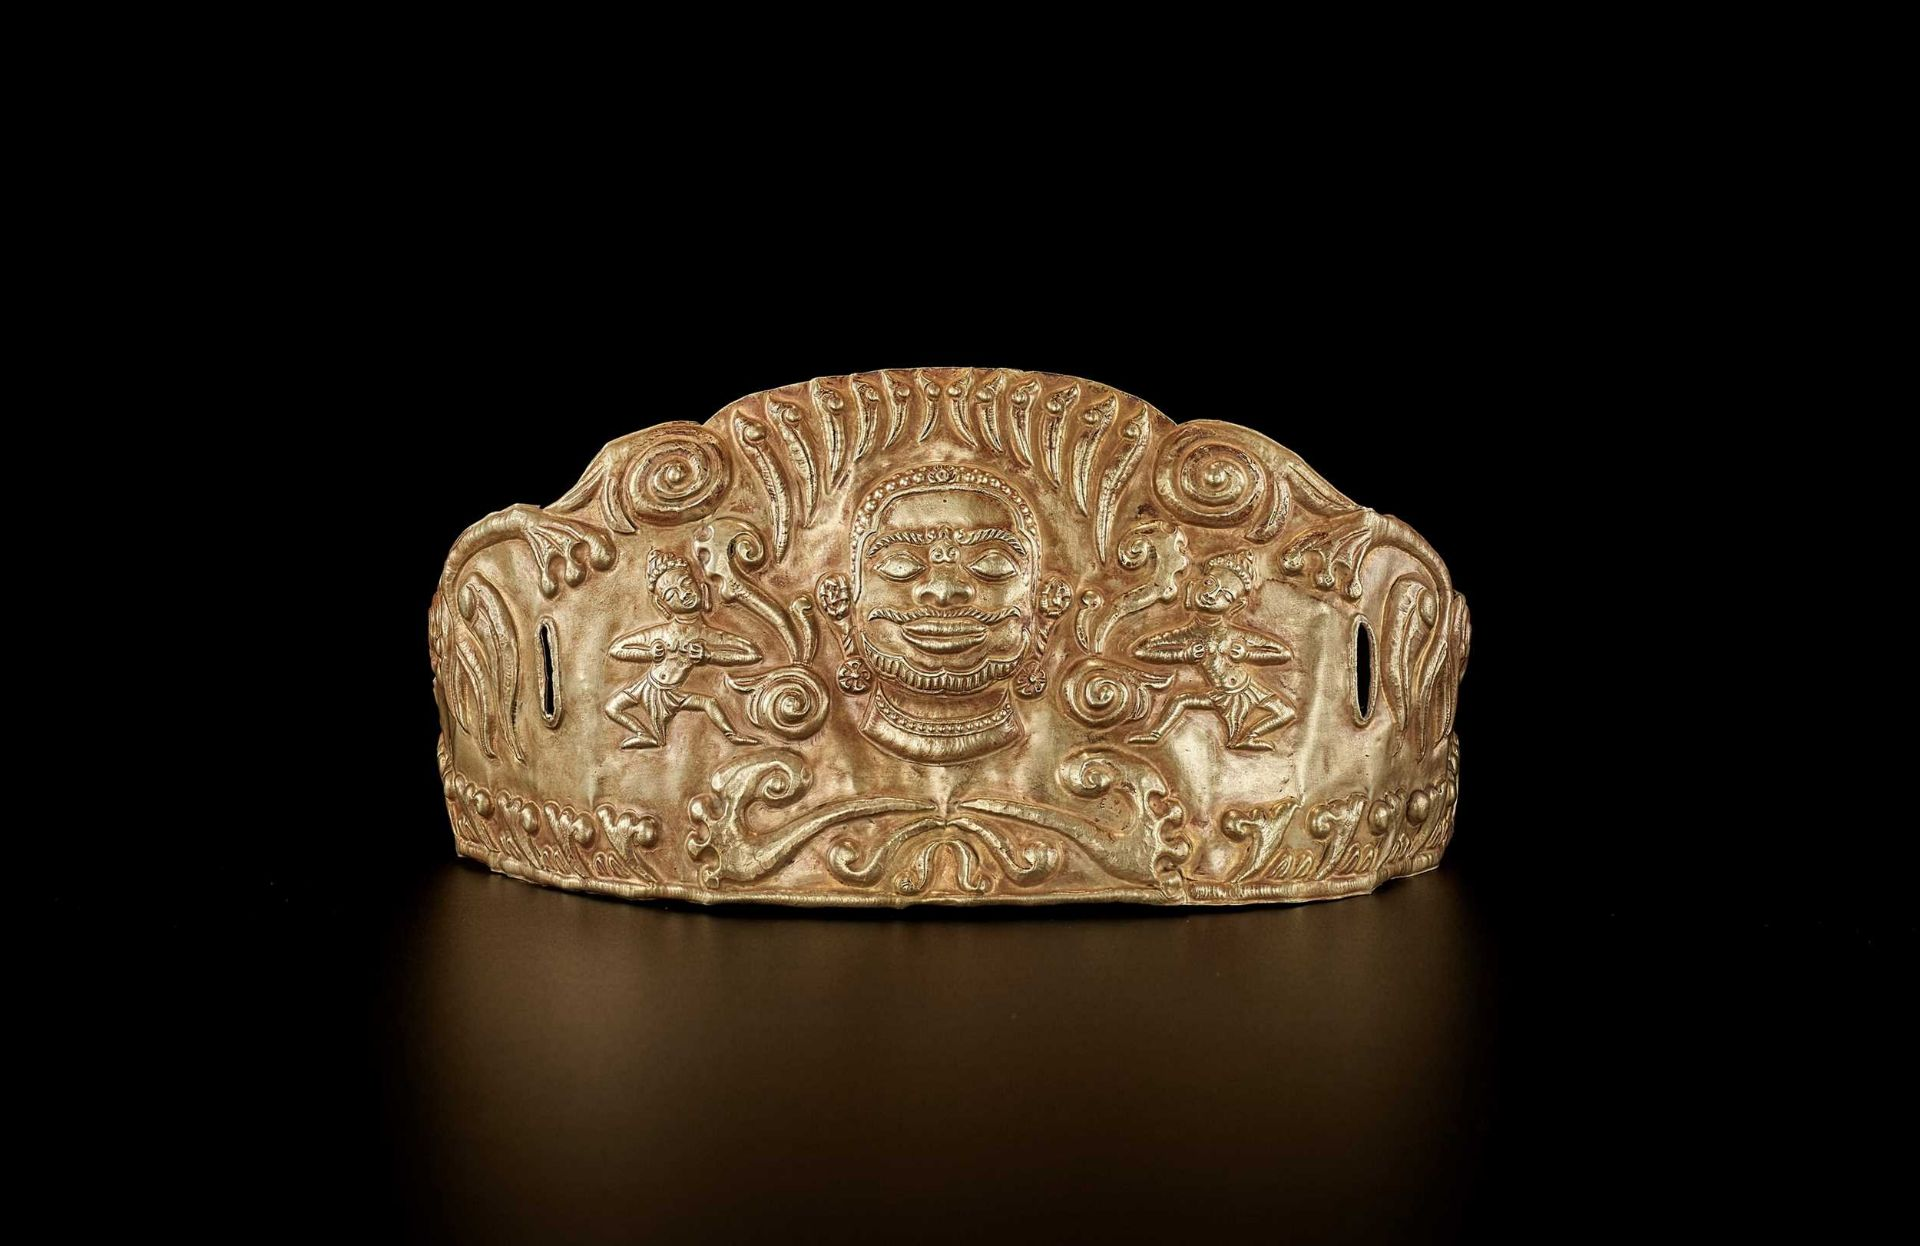 A CHAM GOLD REPOUSSÉ CROWN WIT SHIVA AND DANCING APSARAS